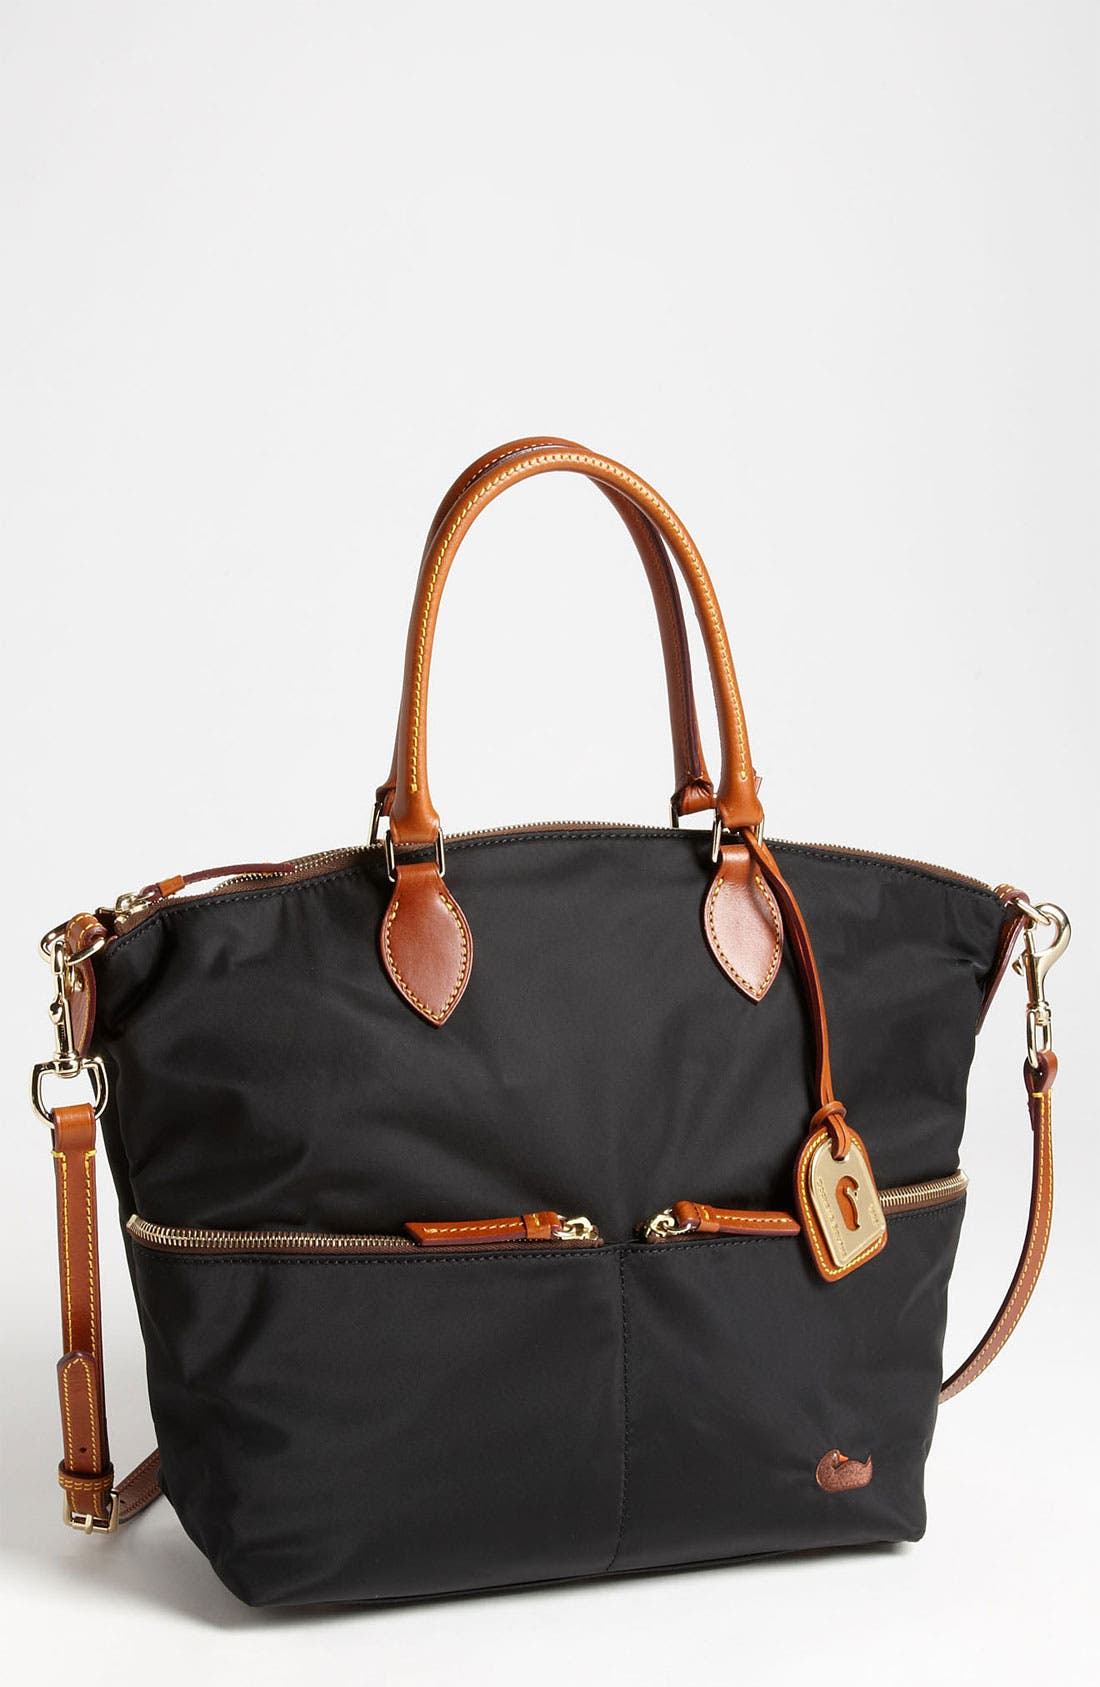 Alternate Image 1 Selected - Dooney & Bourke 'Zip Sac' Nylon Satchel